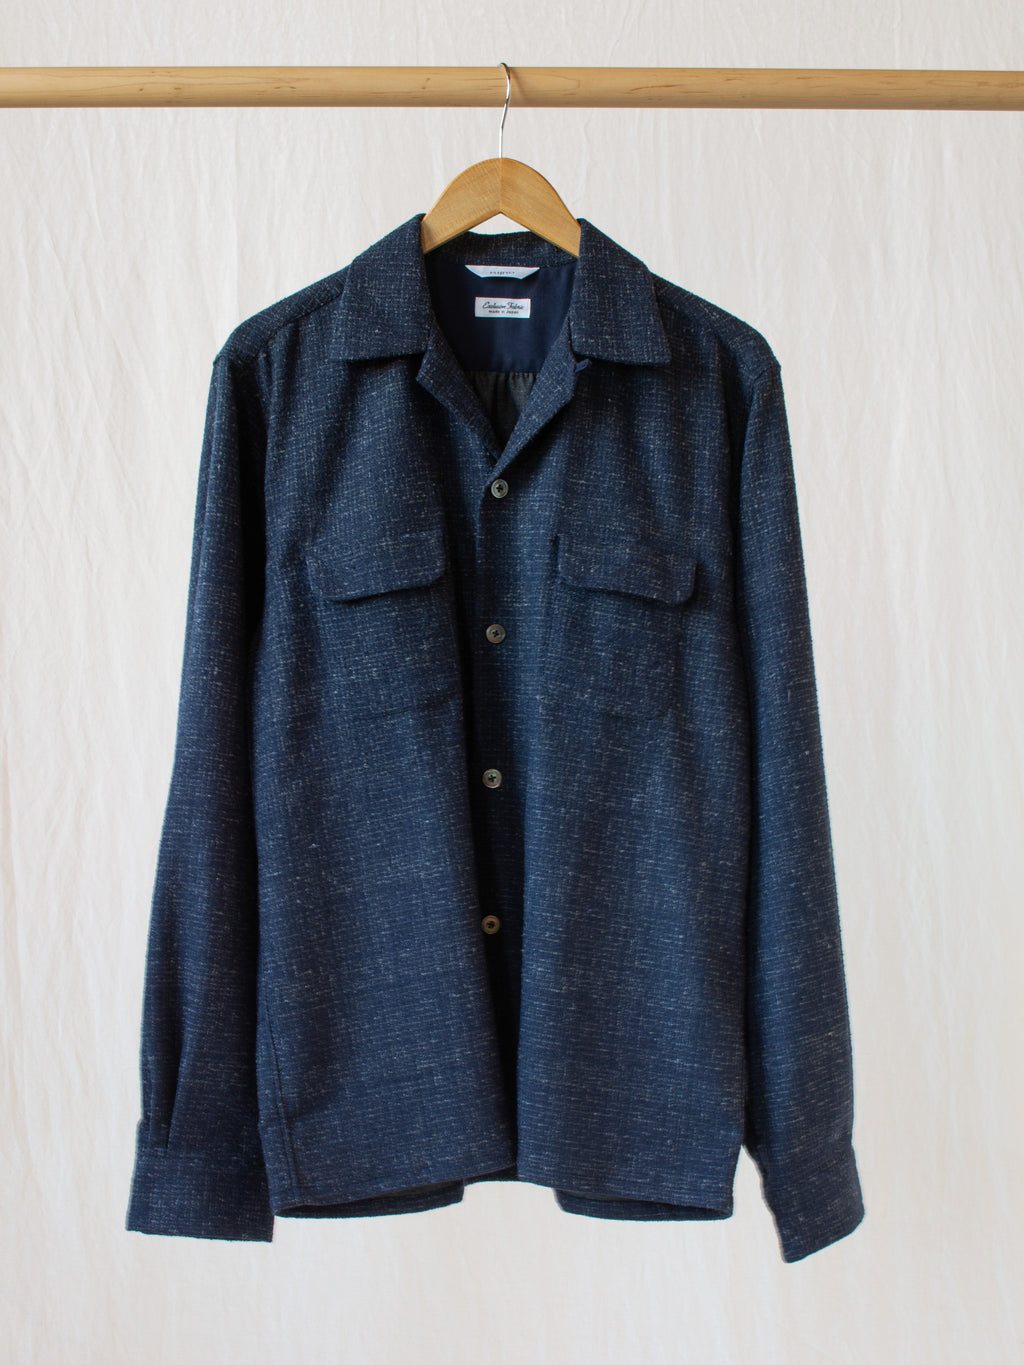 Namu Shop - Fujito Open Collar Shirt - Check